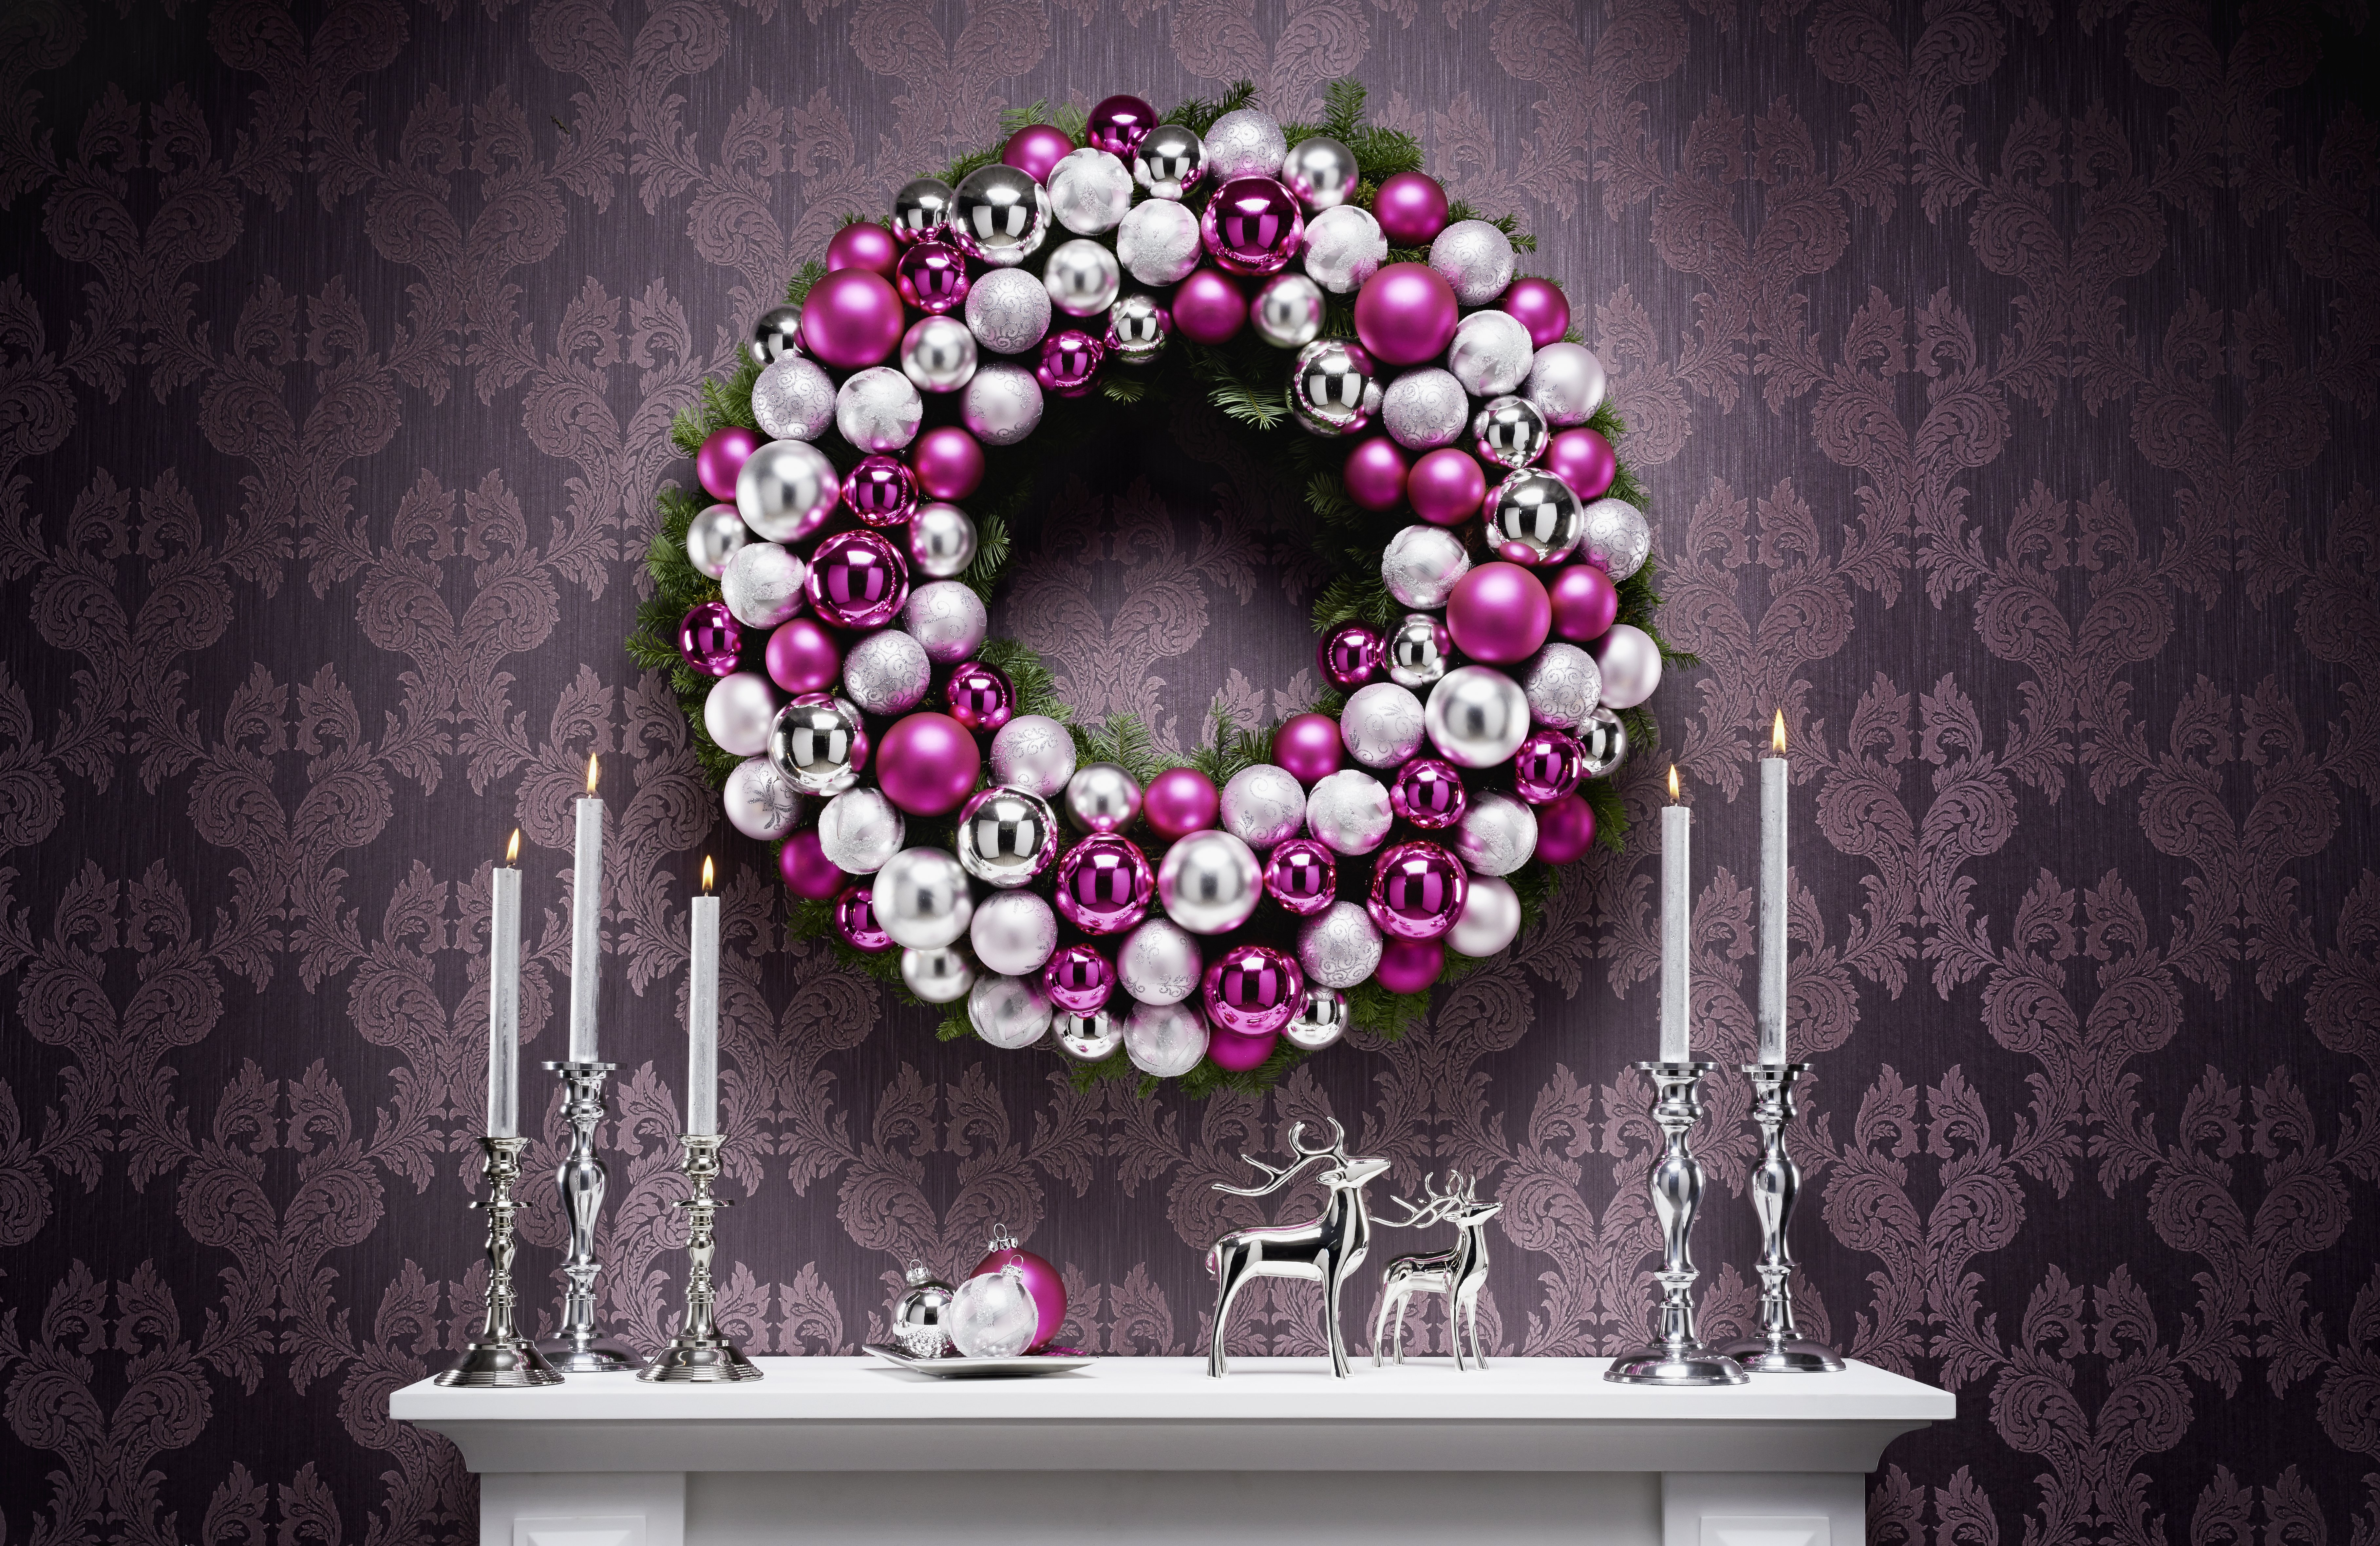 weihnachtskugel bilder christbaumschmuck fotos kostenlos. Black Bedroom Furniture Sets. Home Design Ideas